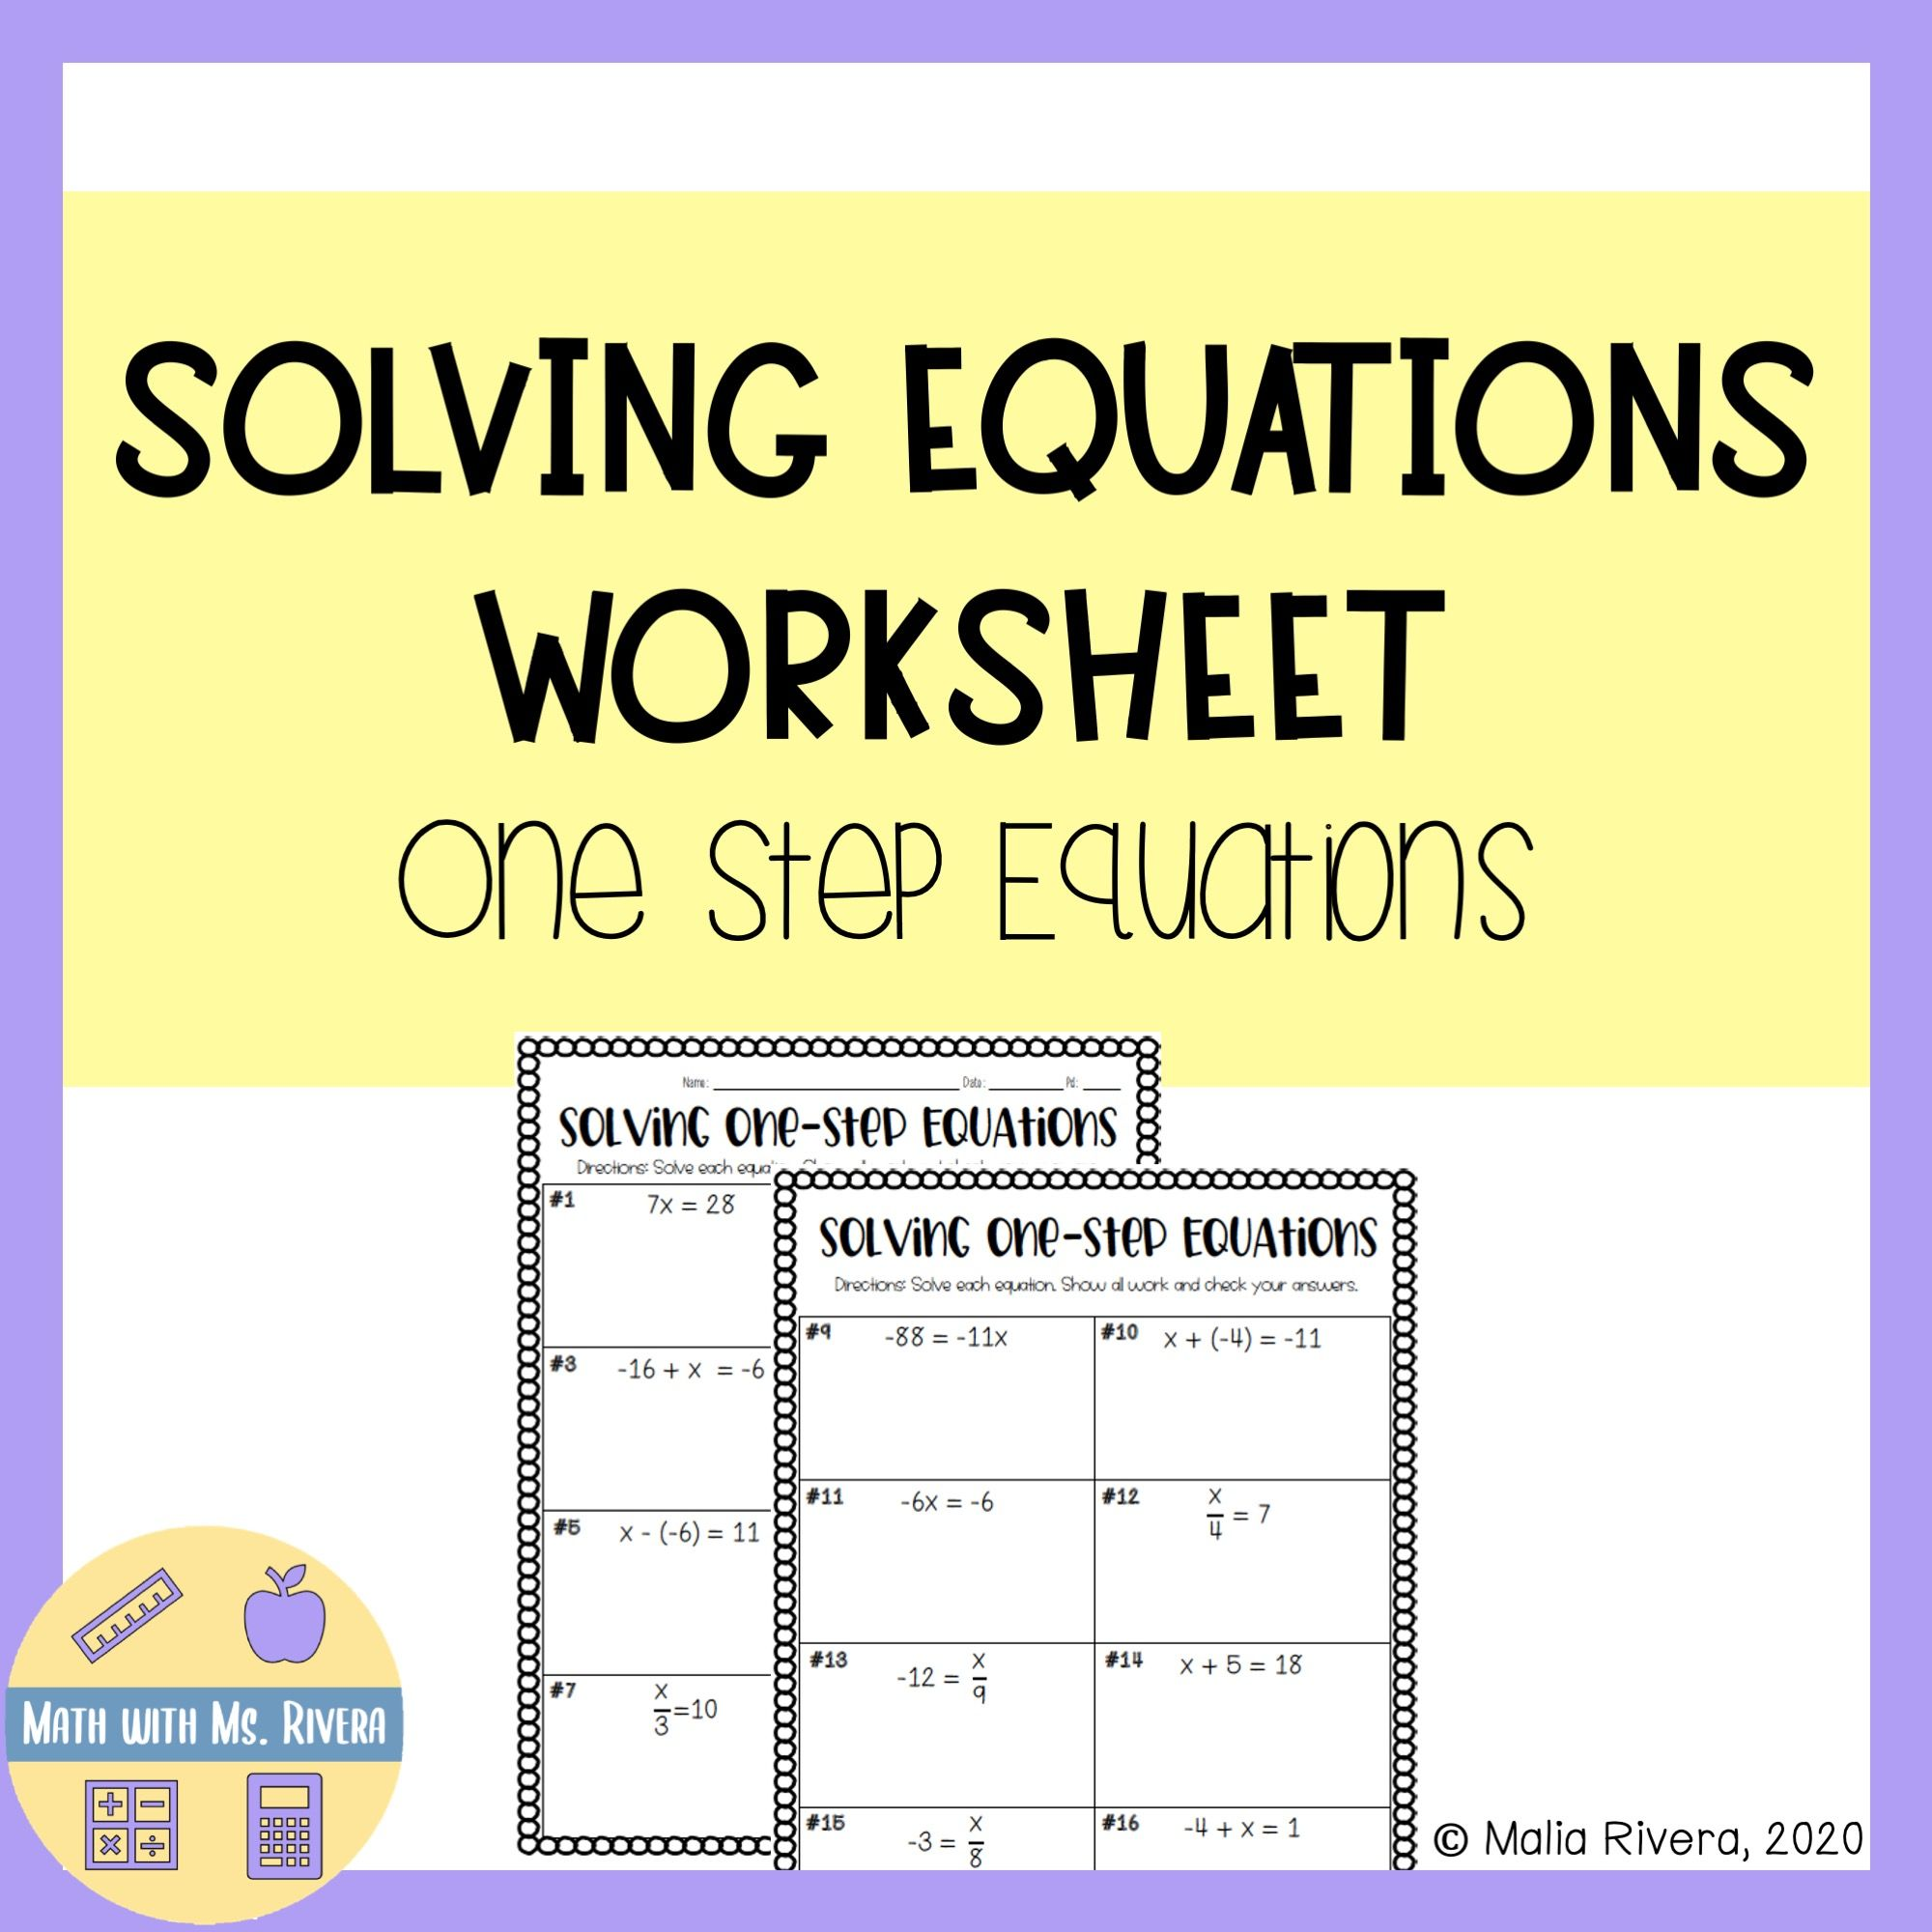 Solving One Step Equations Worksheet One Step Equations Solving Equations Equations